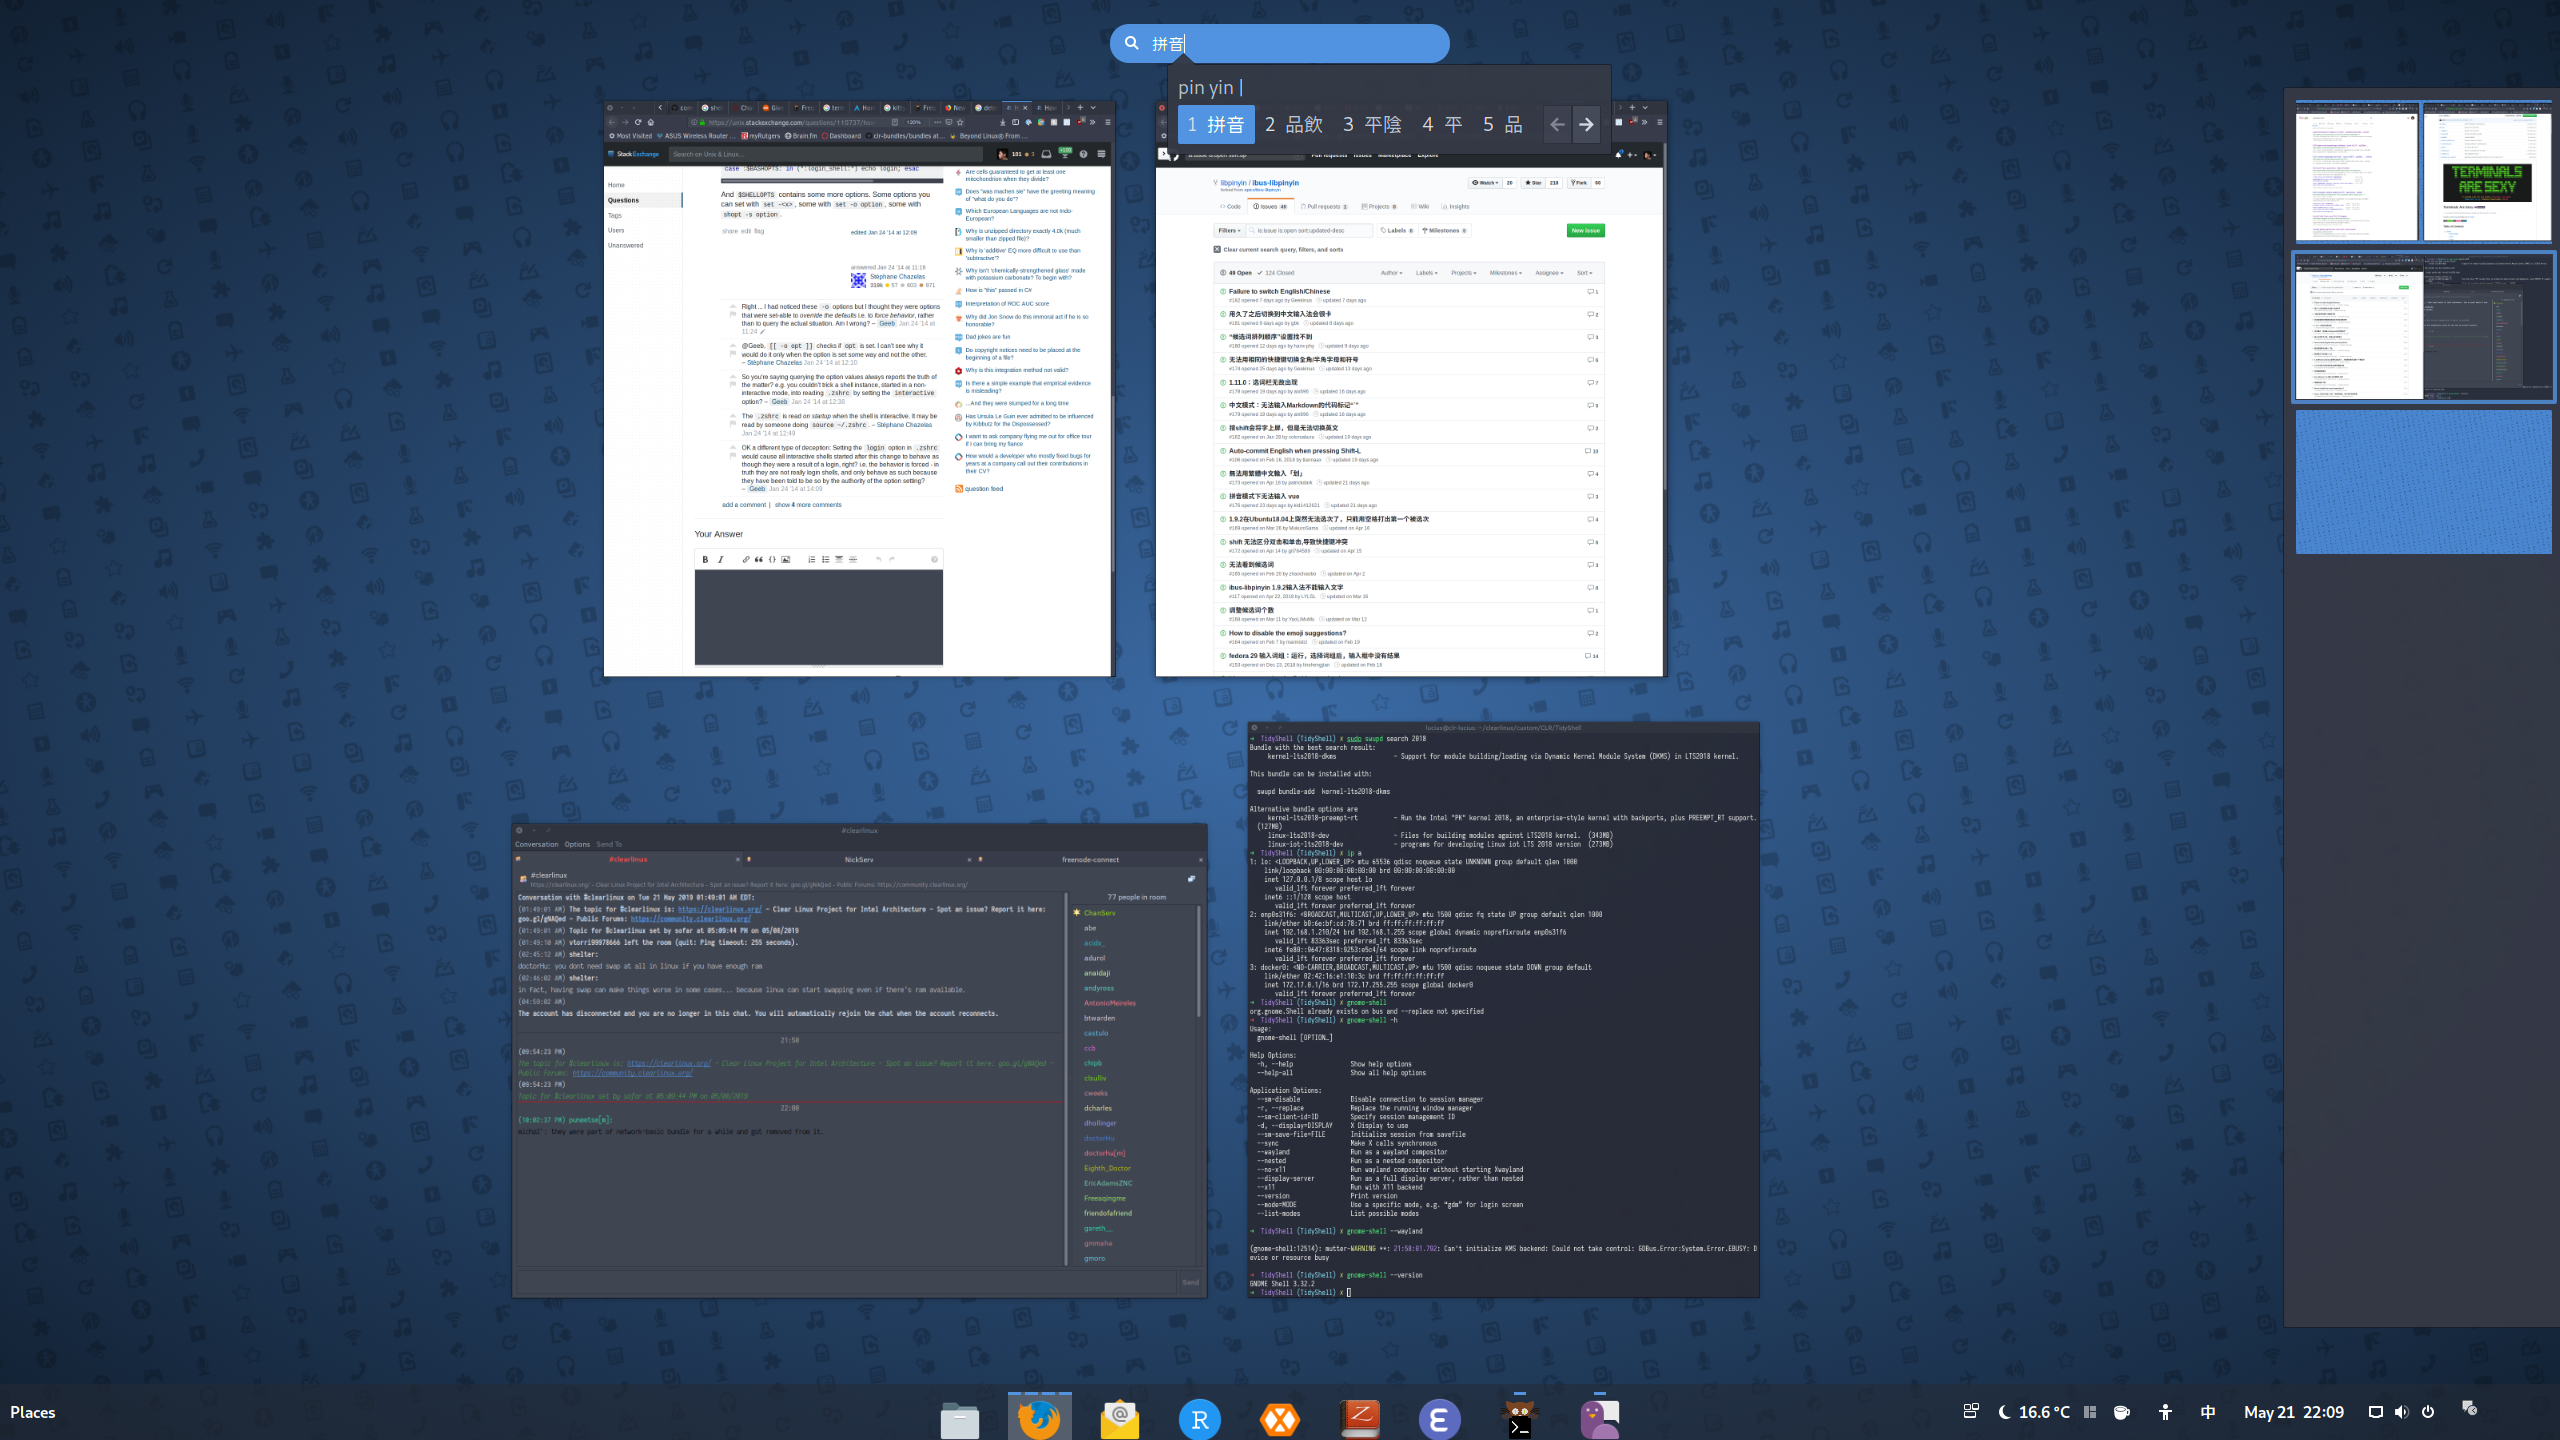 ibus-libpinyin can't input any chinese characters in GTK3 apps but